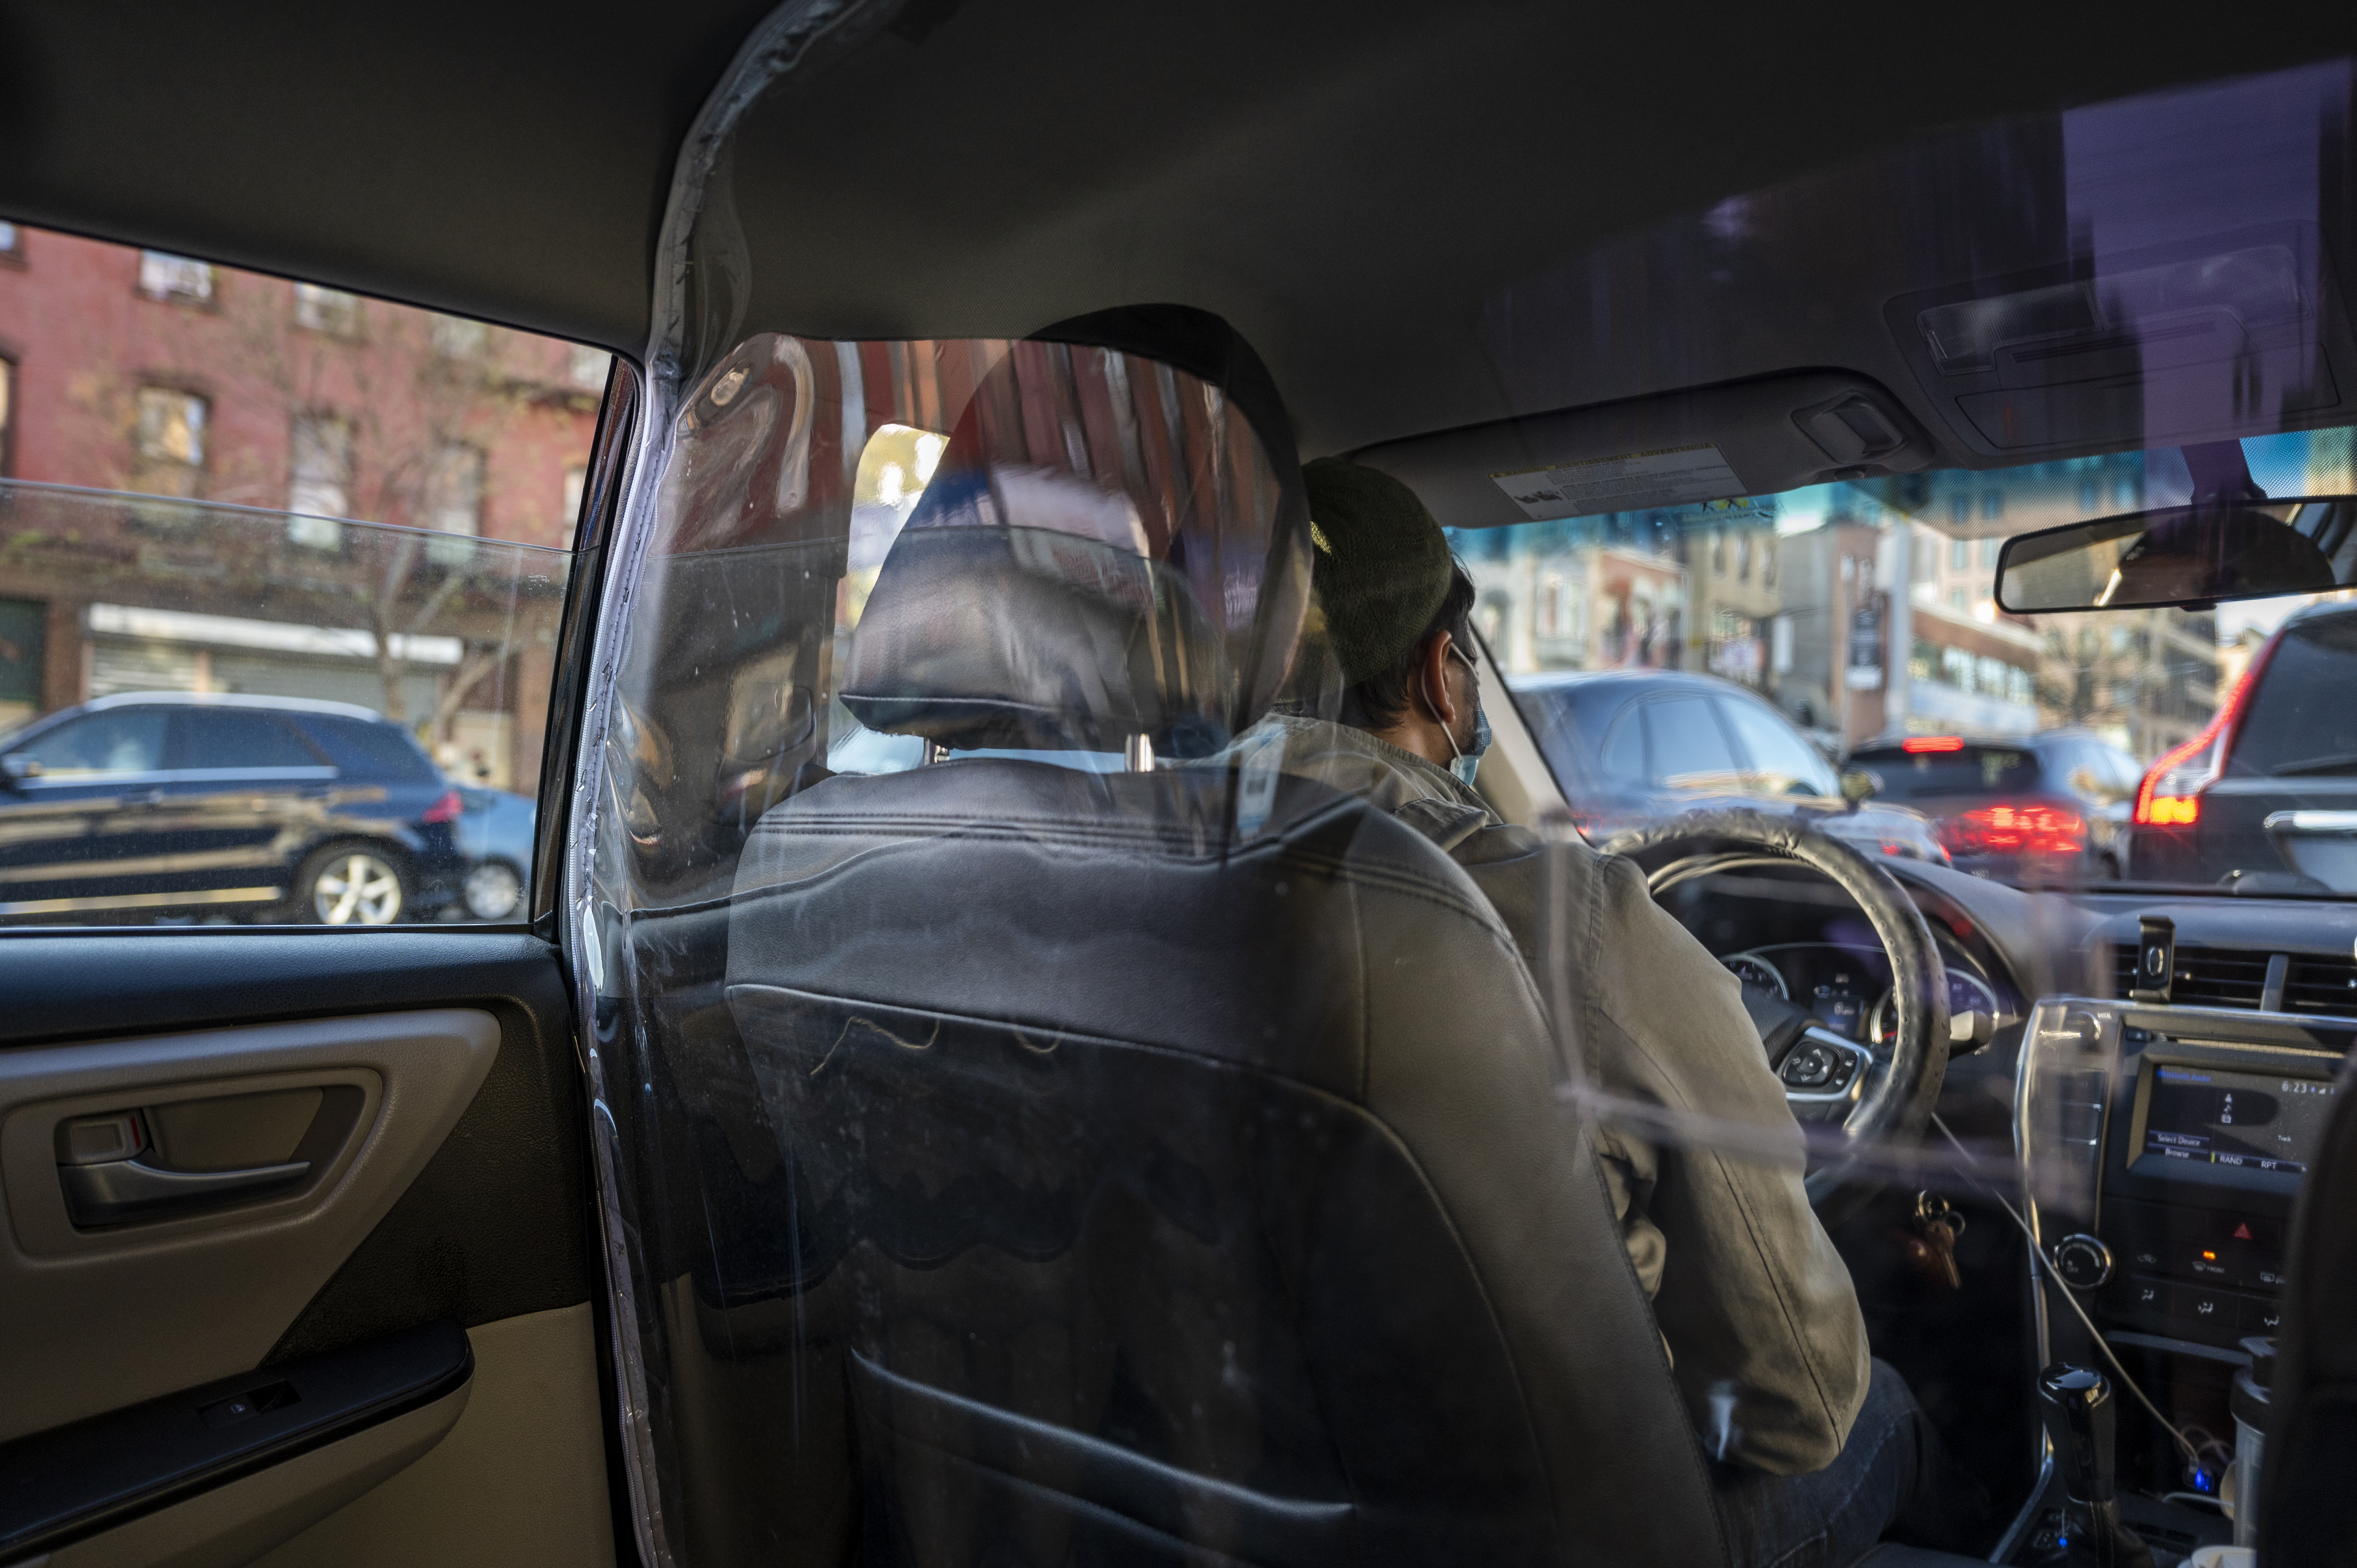 A ride-share in Brooklyn, April 23, 2020.